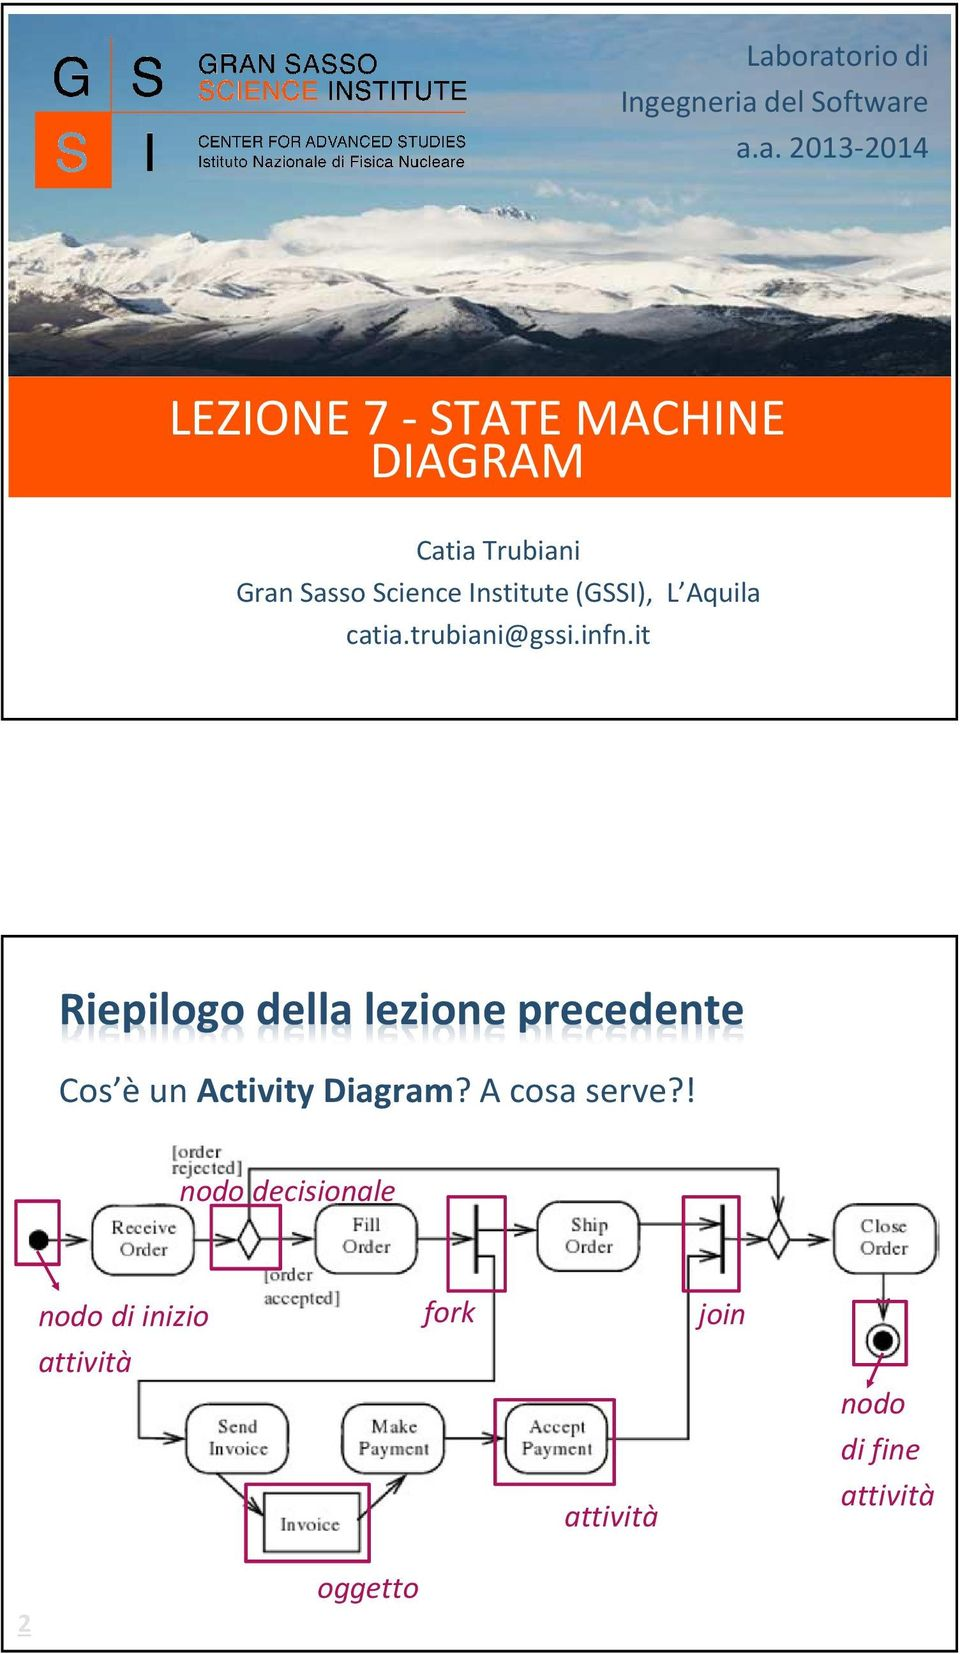 trubiani@gssi.infn.it Riepilogo della lezione precedente Cos è un Activity Diagram?